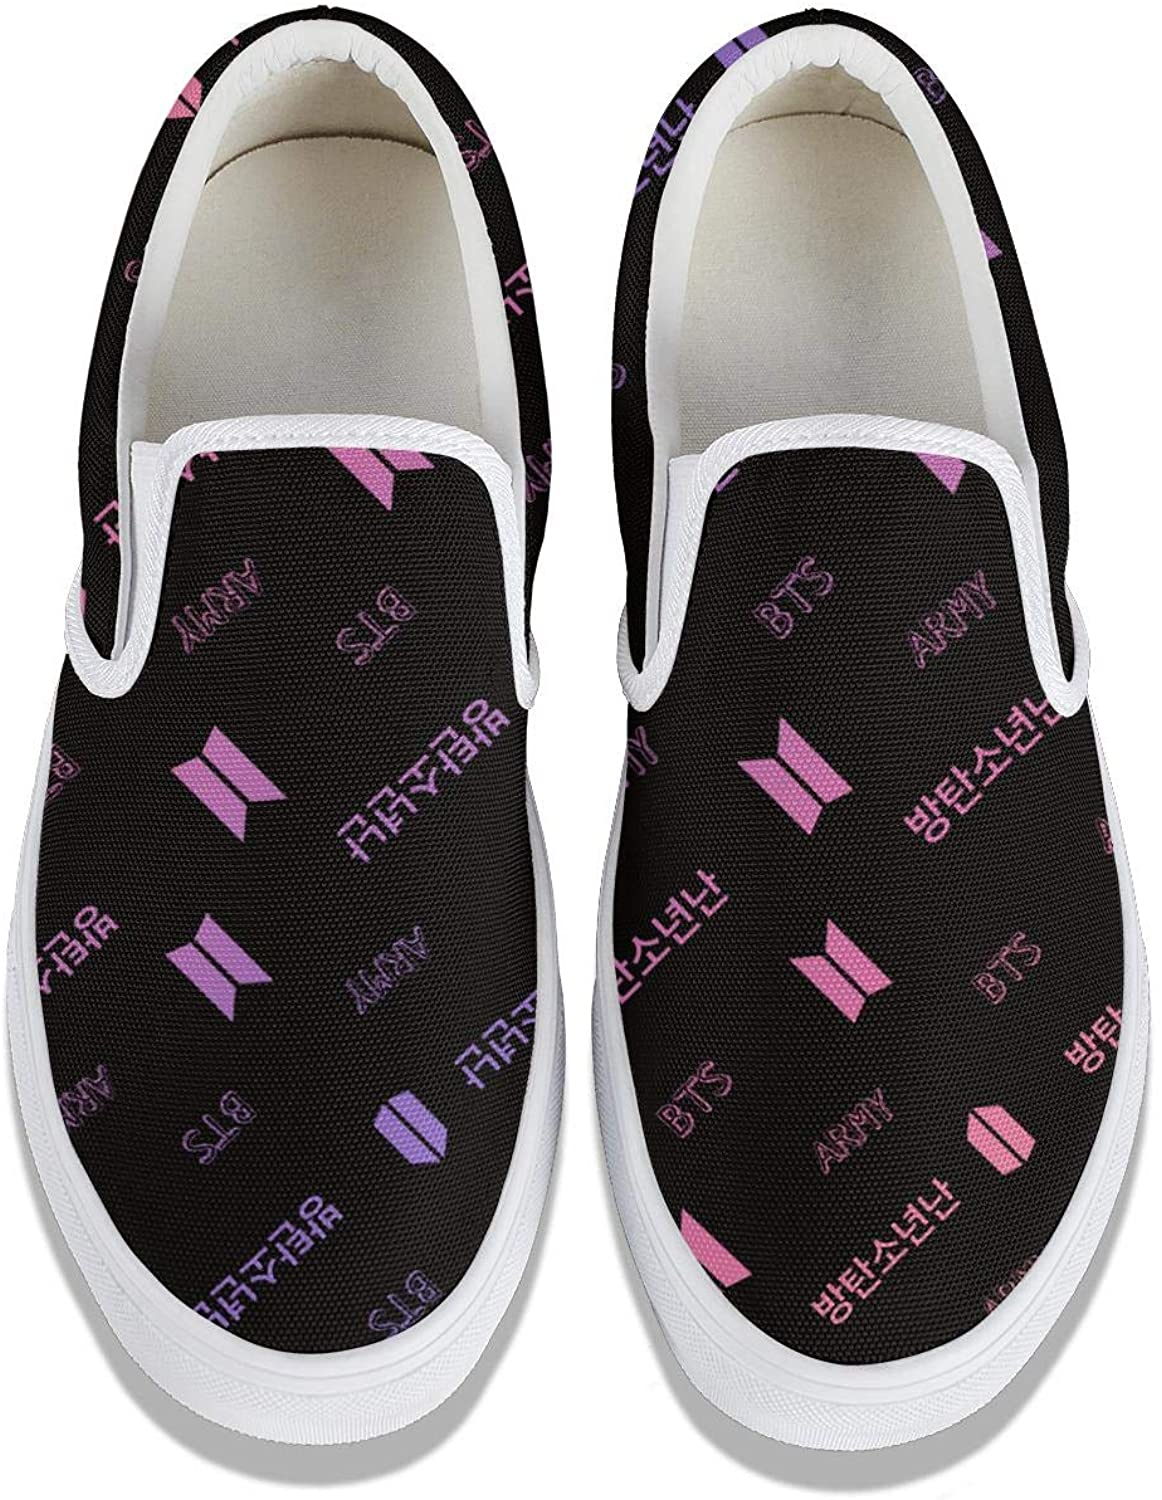 BTS-Kpop-Bangtan-Boys- Girl Convas Slip on Snakers Loafers Shoes Canvas Classic Shoes